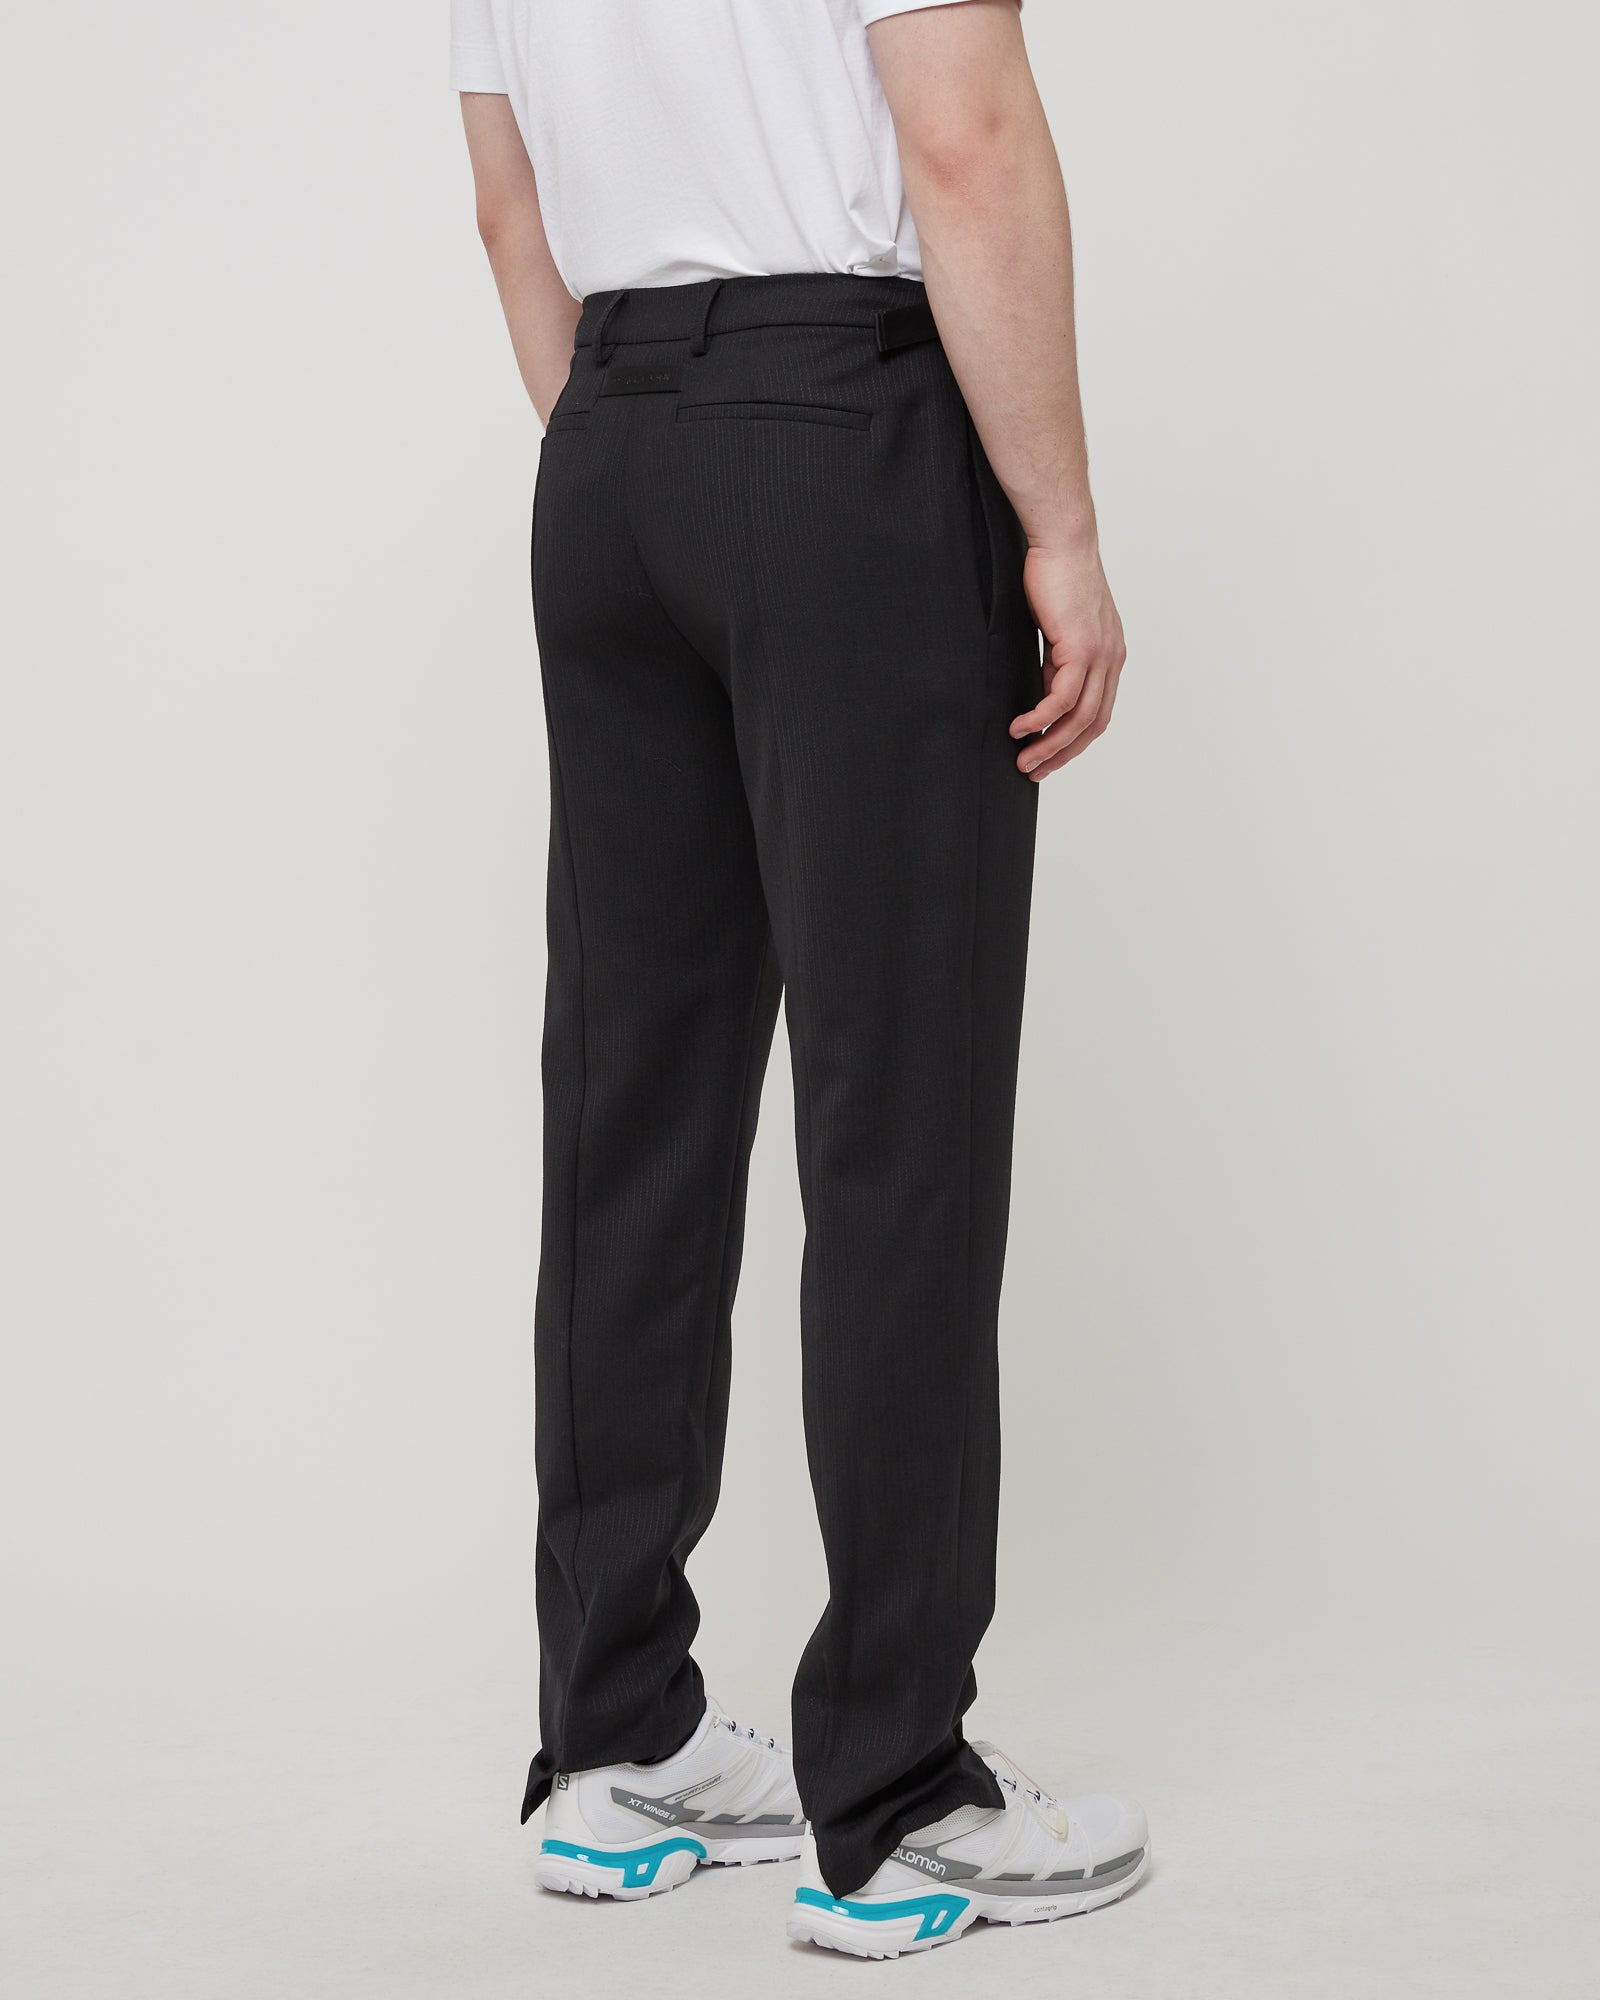 Stirrup Suit Pant in Black